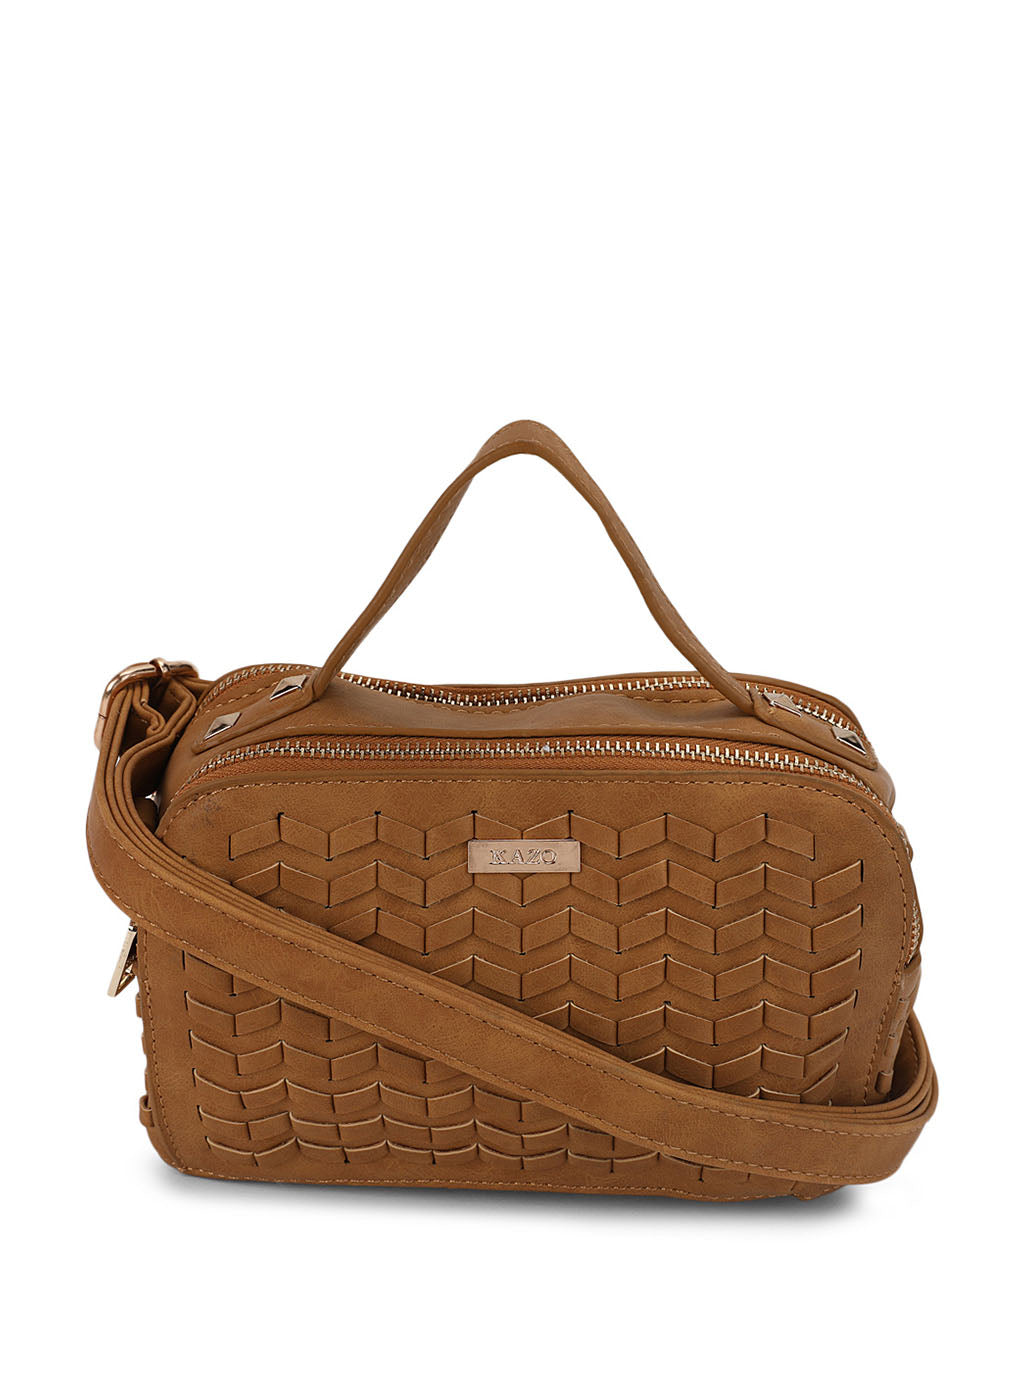 Weaved Handbag